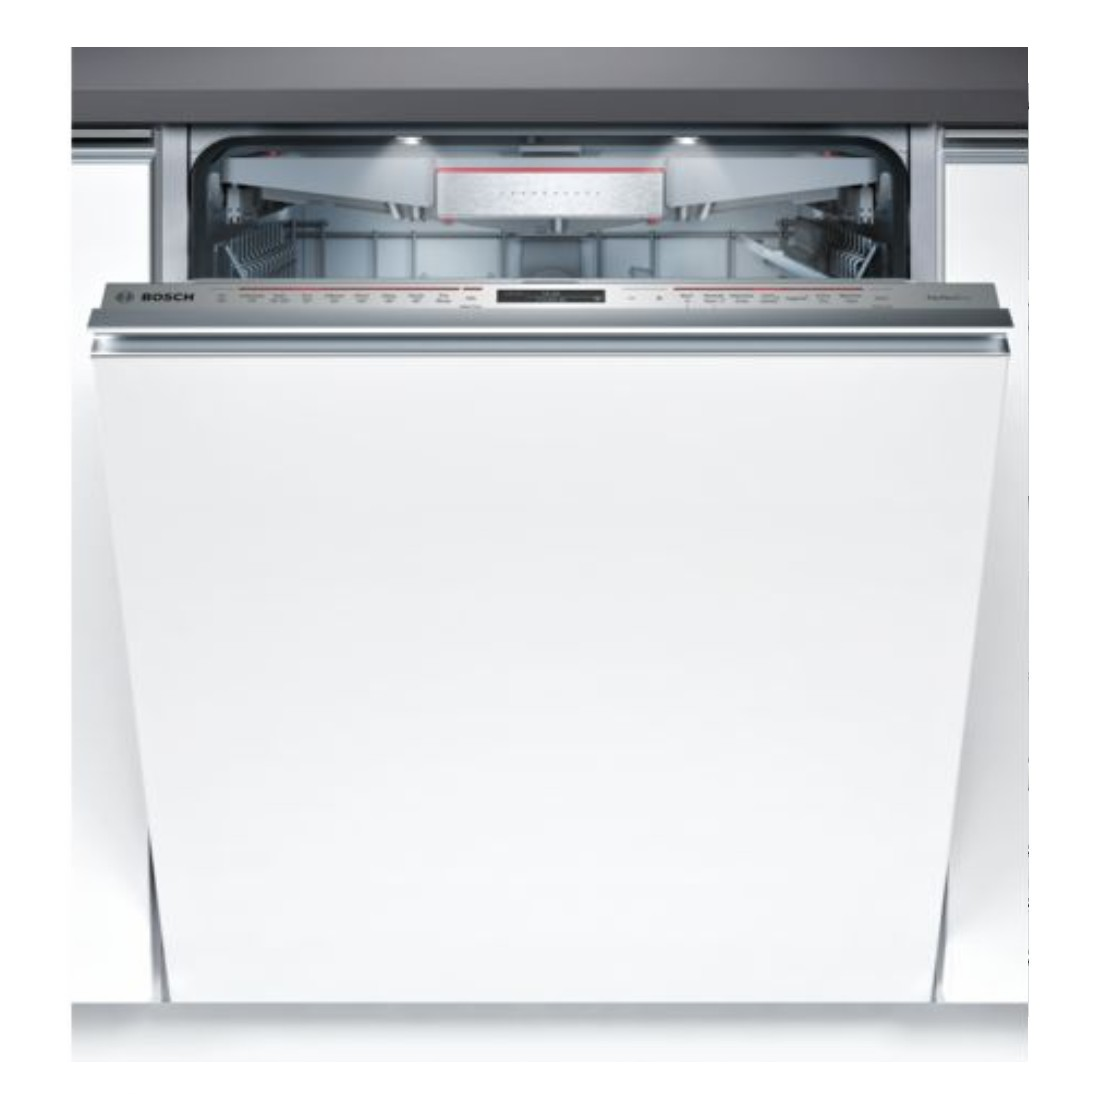 SMV68TD06G | Series 6 PerfectDry Dishwasher 60cm Fully integrated Door Open Assist